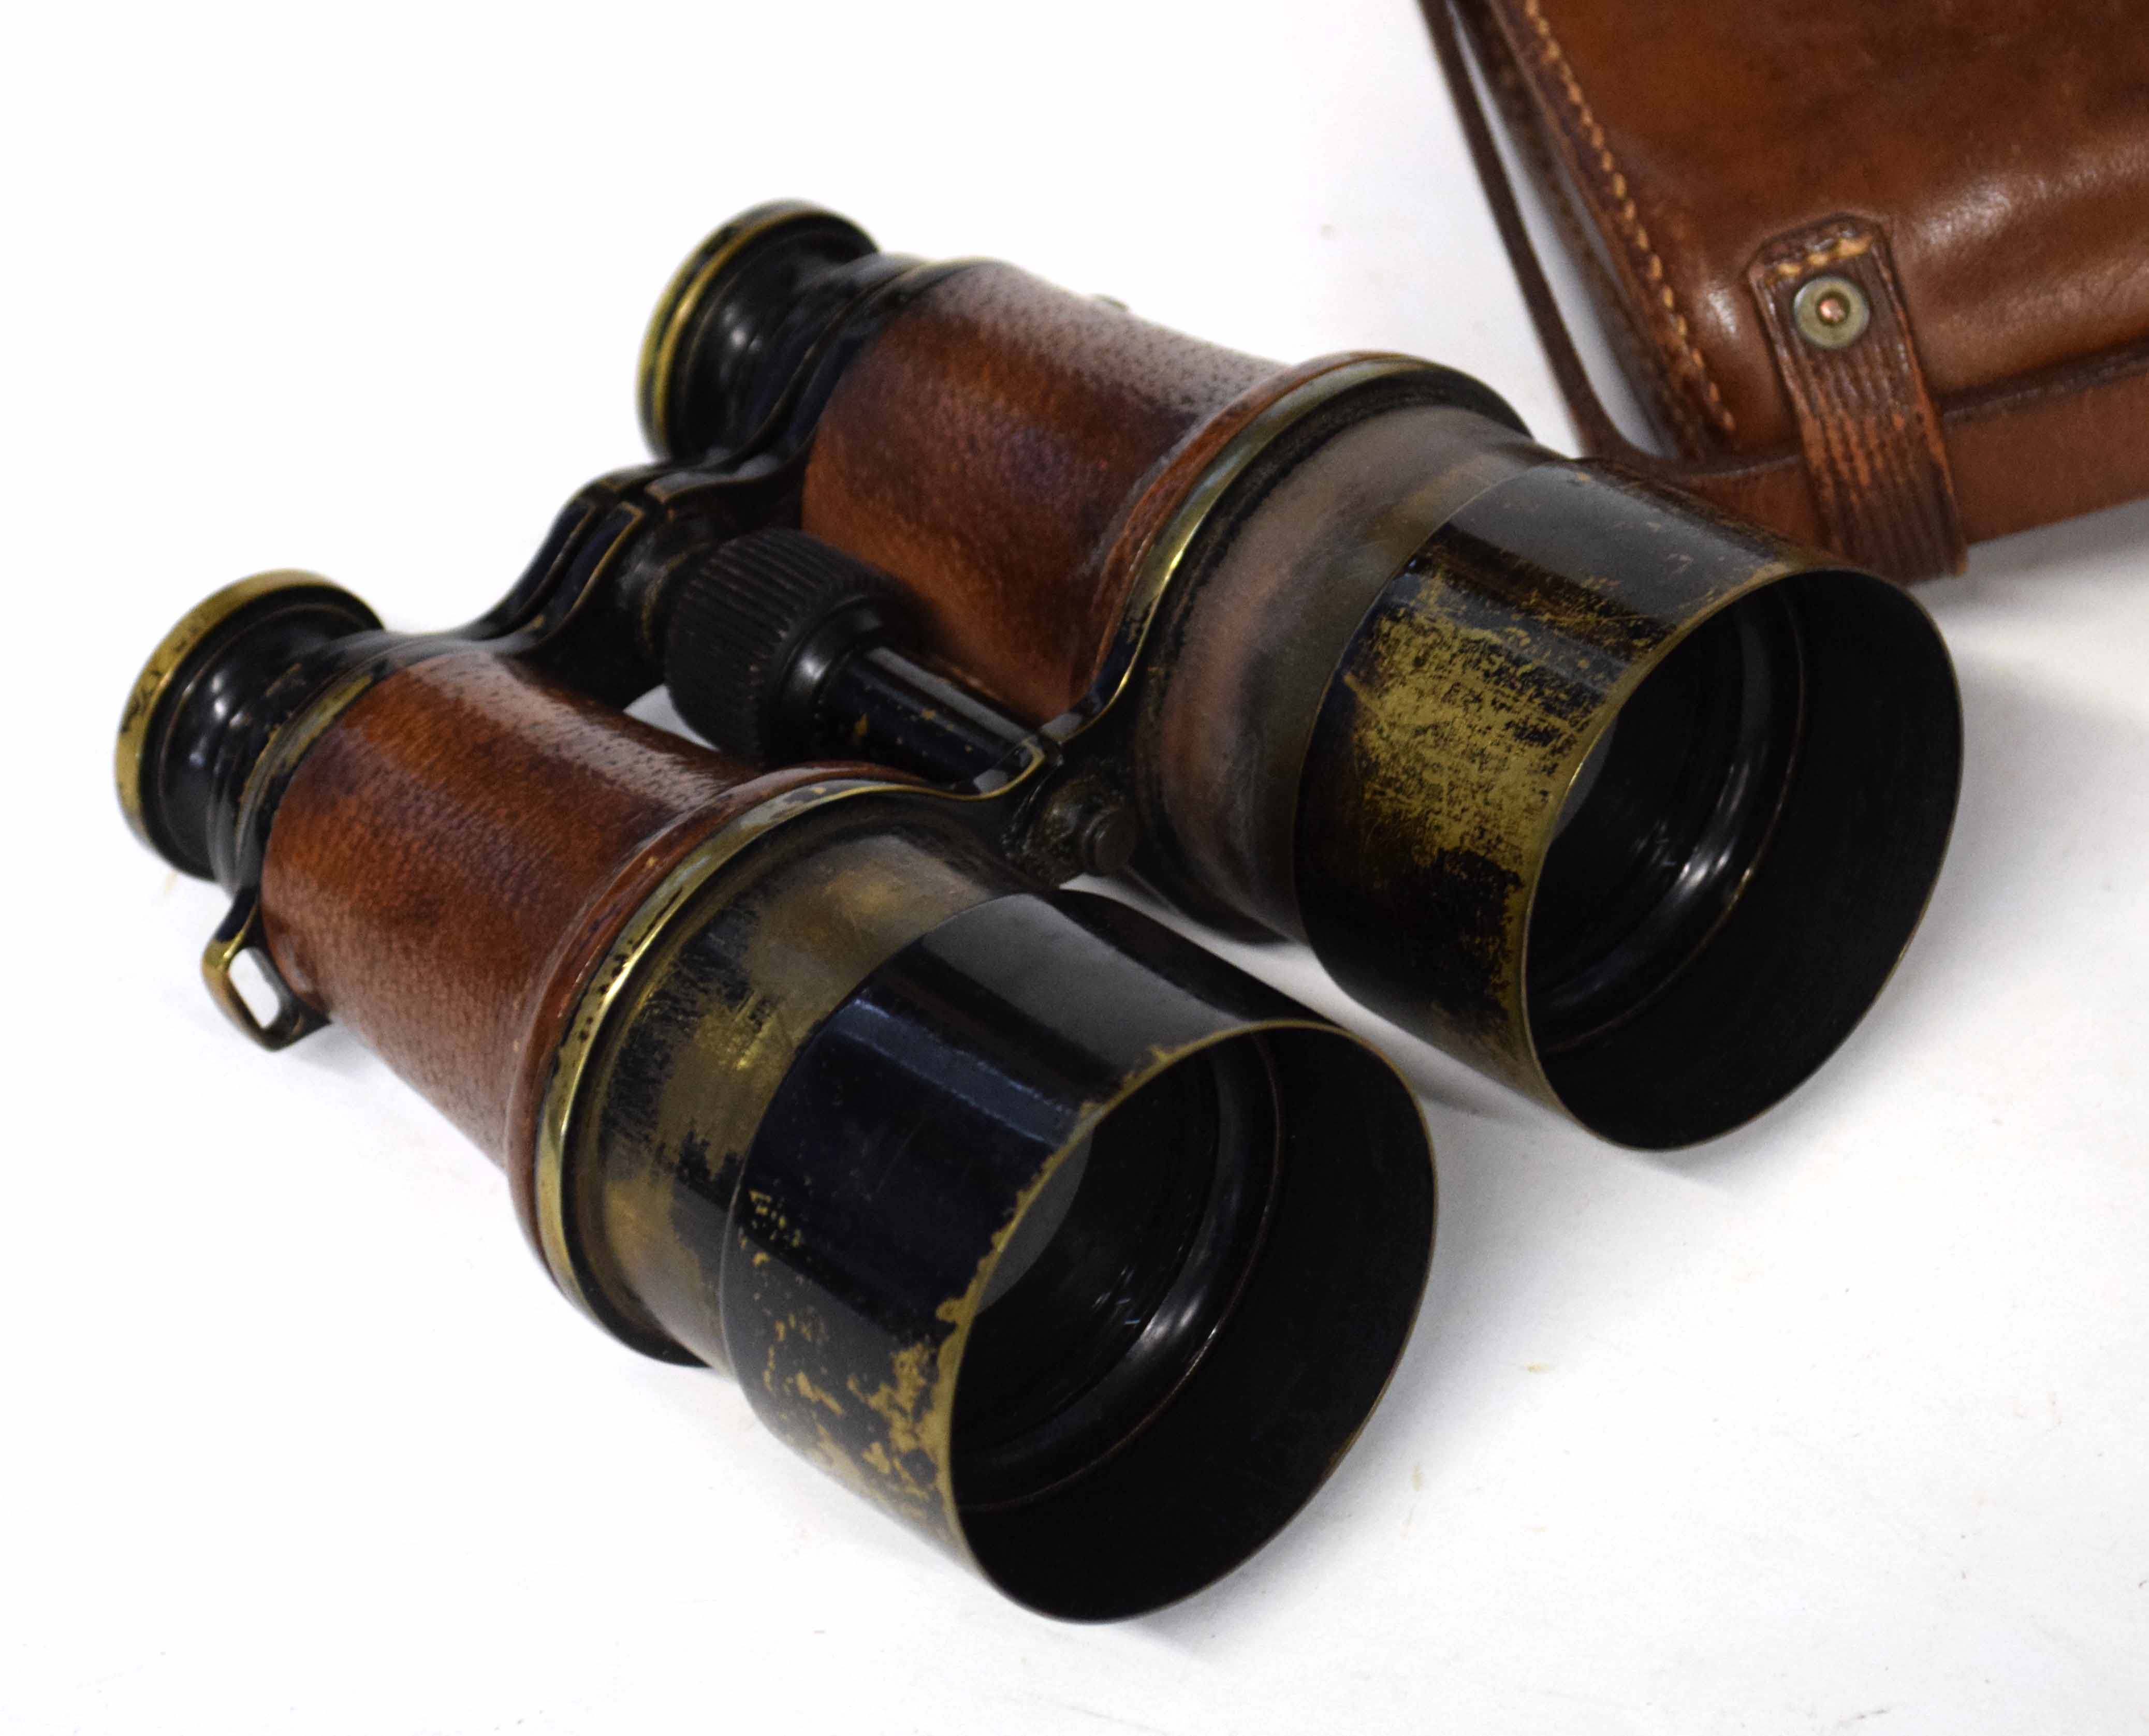 Pair of cased early 20th century British Military MK 5 binoculars stamped with War Dept Govt issue - Image 3 of 4